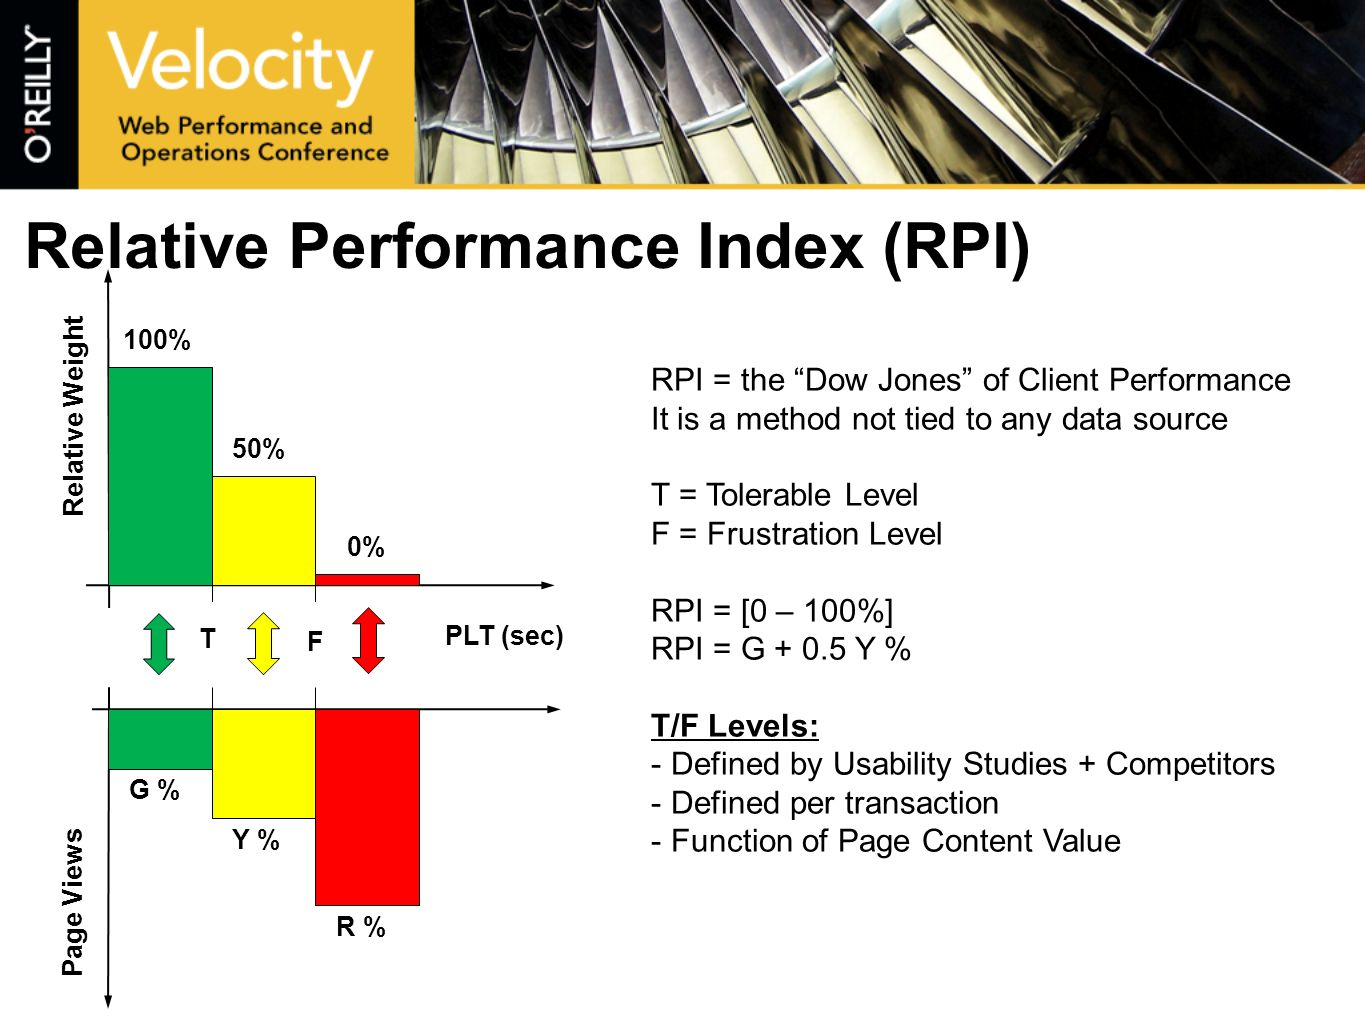 Relative Performance Index (RPI) RPI = the Dow Jones of Client Performance It is a method not tied to any data source T = Tolerable Level F = Frustration Level RPI = [0 – 100%] RPI = G + 0.5 Y % T/F Levels: - Defined by Usability Studies + Competitors - Defined per transaction - Function of Page Content Value 100% 50% 0% PLT (sec) T F G % Y % R % Page Views Relative Weight